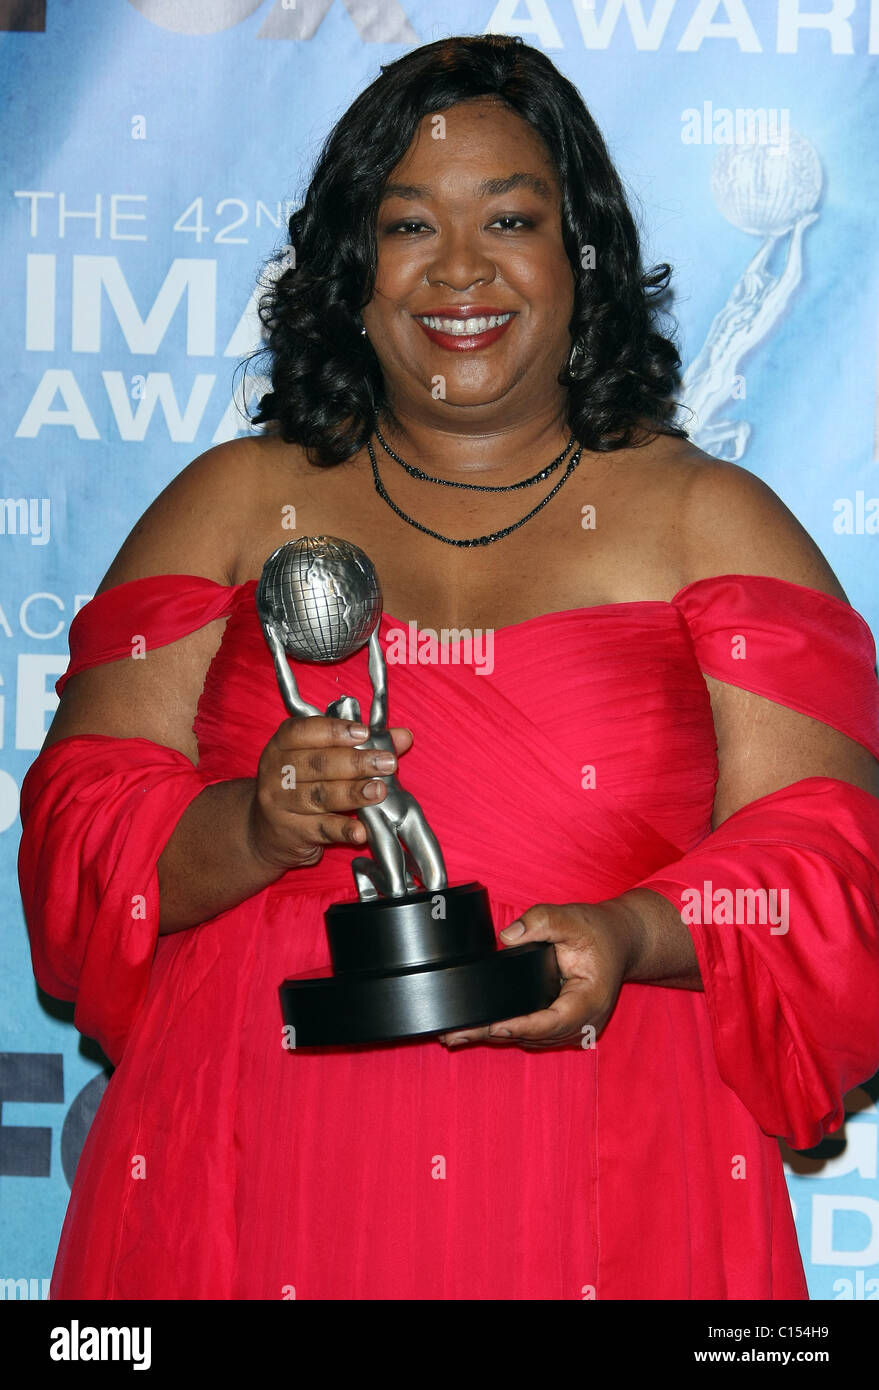 SHONDA RHIMES 42ND NAACP IMAGE AWARDS PRESSROOM. DOWNTOWN LOS ANGELES CALIFORNIA USA 04 March 2011 - Stock Image